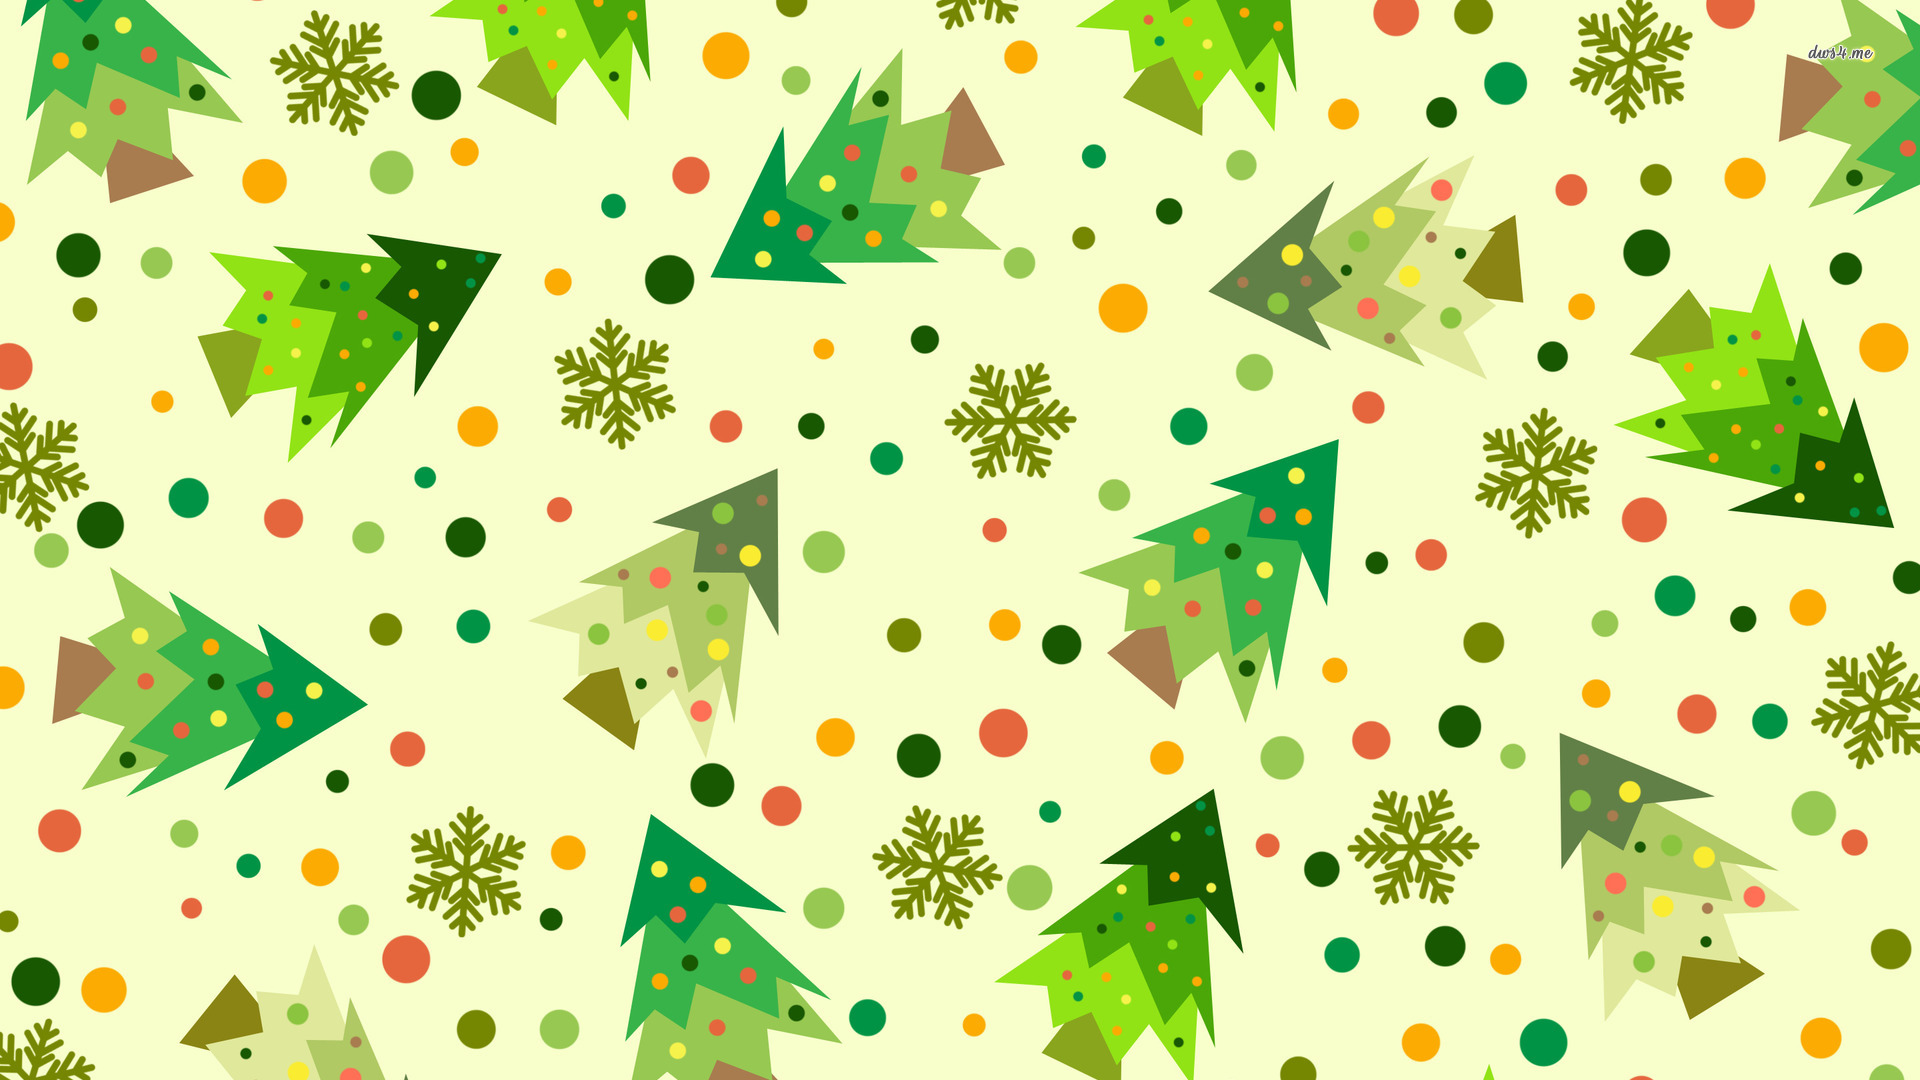 Falling Snow Live Wallpaper For Iphone Download Christmas Pattern Wallpaper Gallery